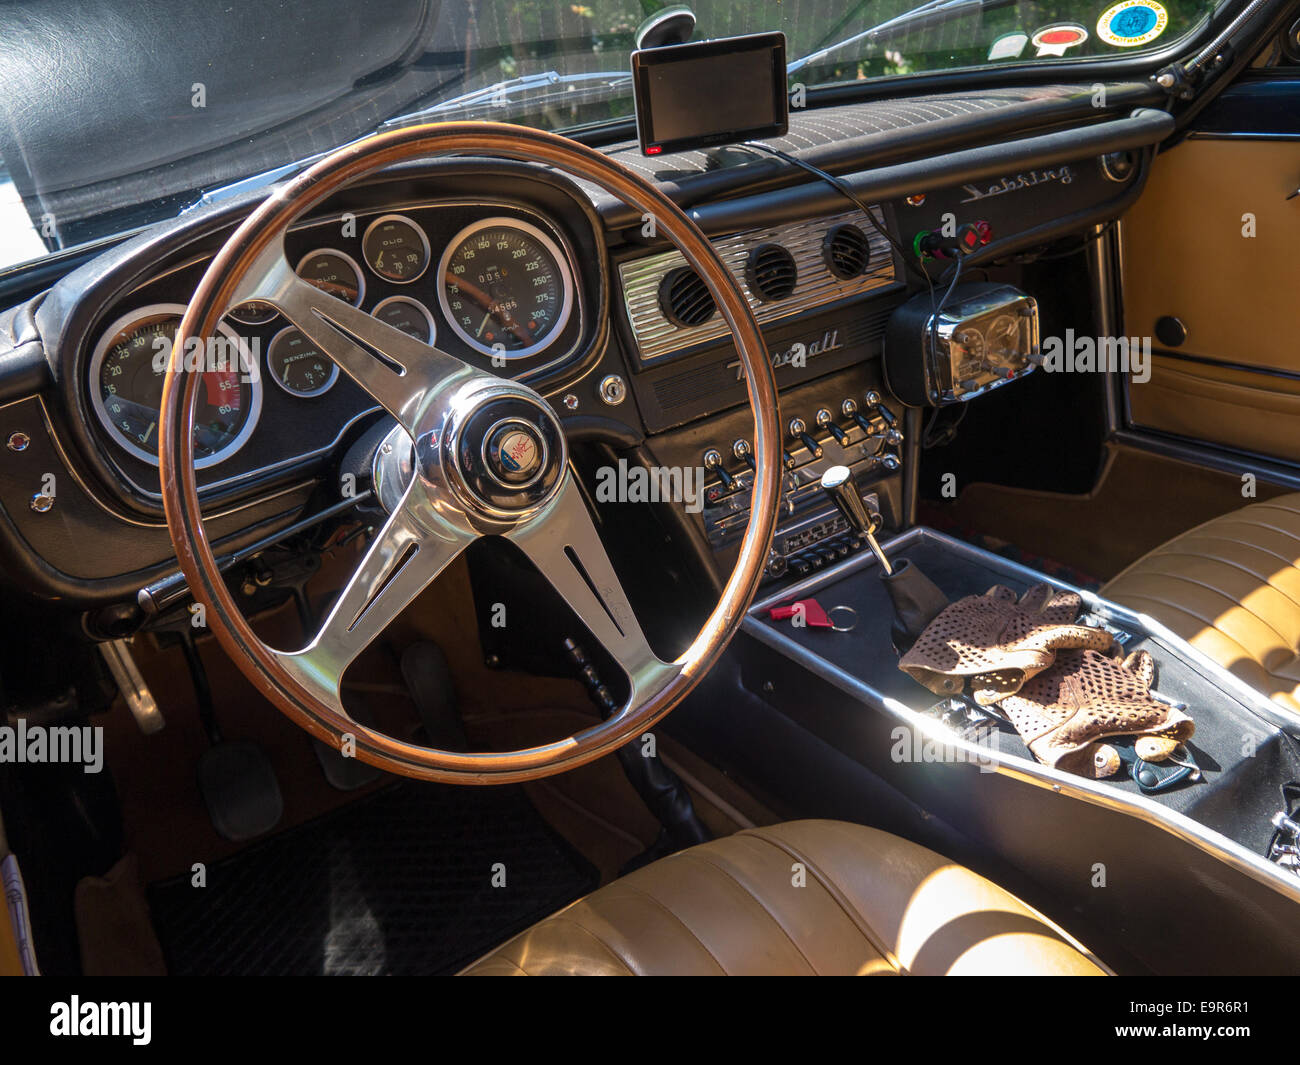 interior of a classic maserati sebring sports car with driving gloves stock photo 74883621 alamy. Black Bedroom Furniture Sets. Home Design Ideas